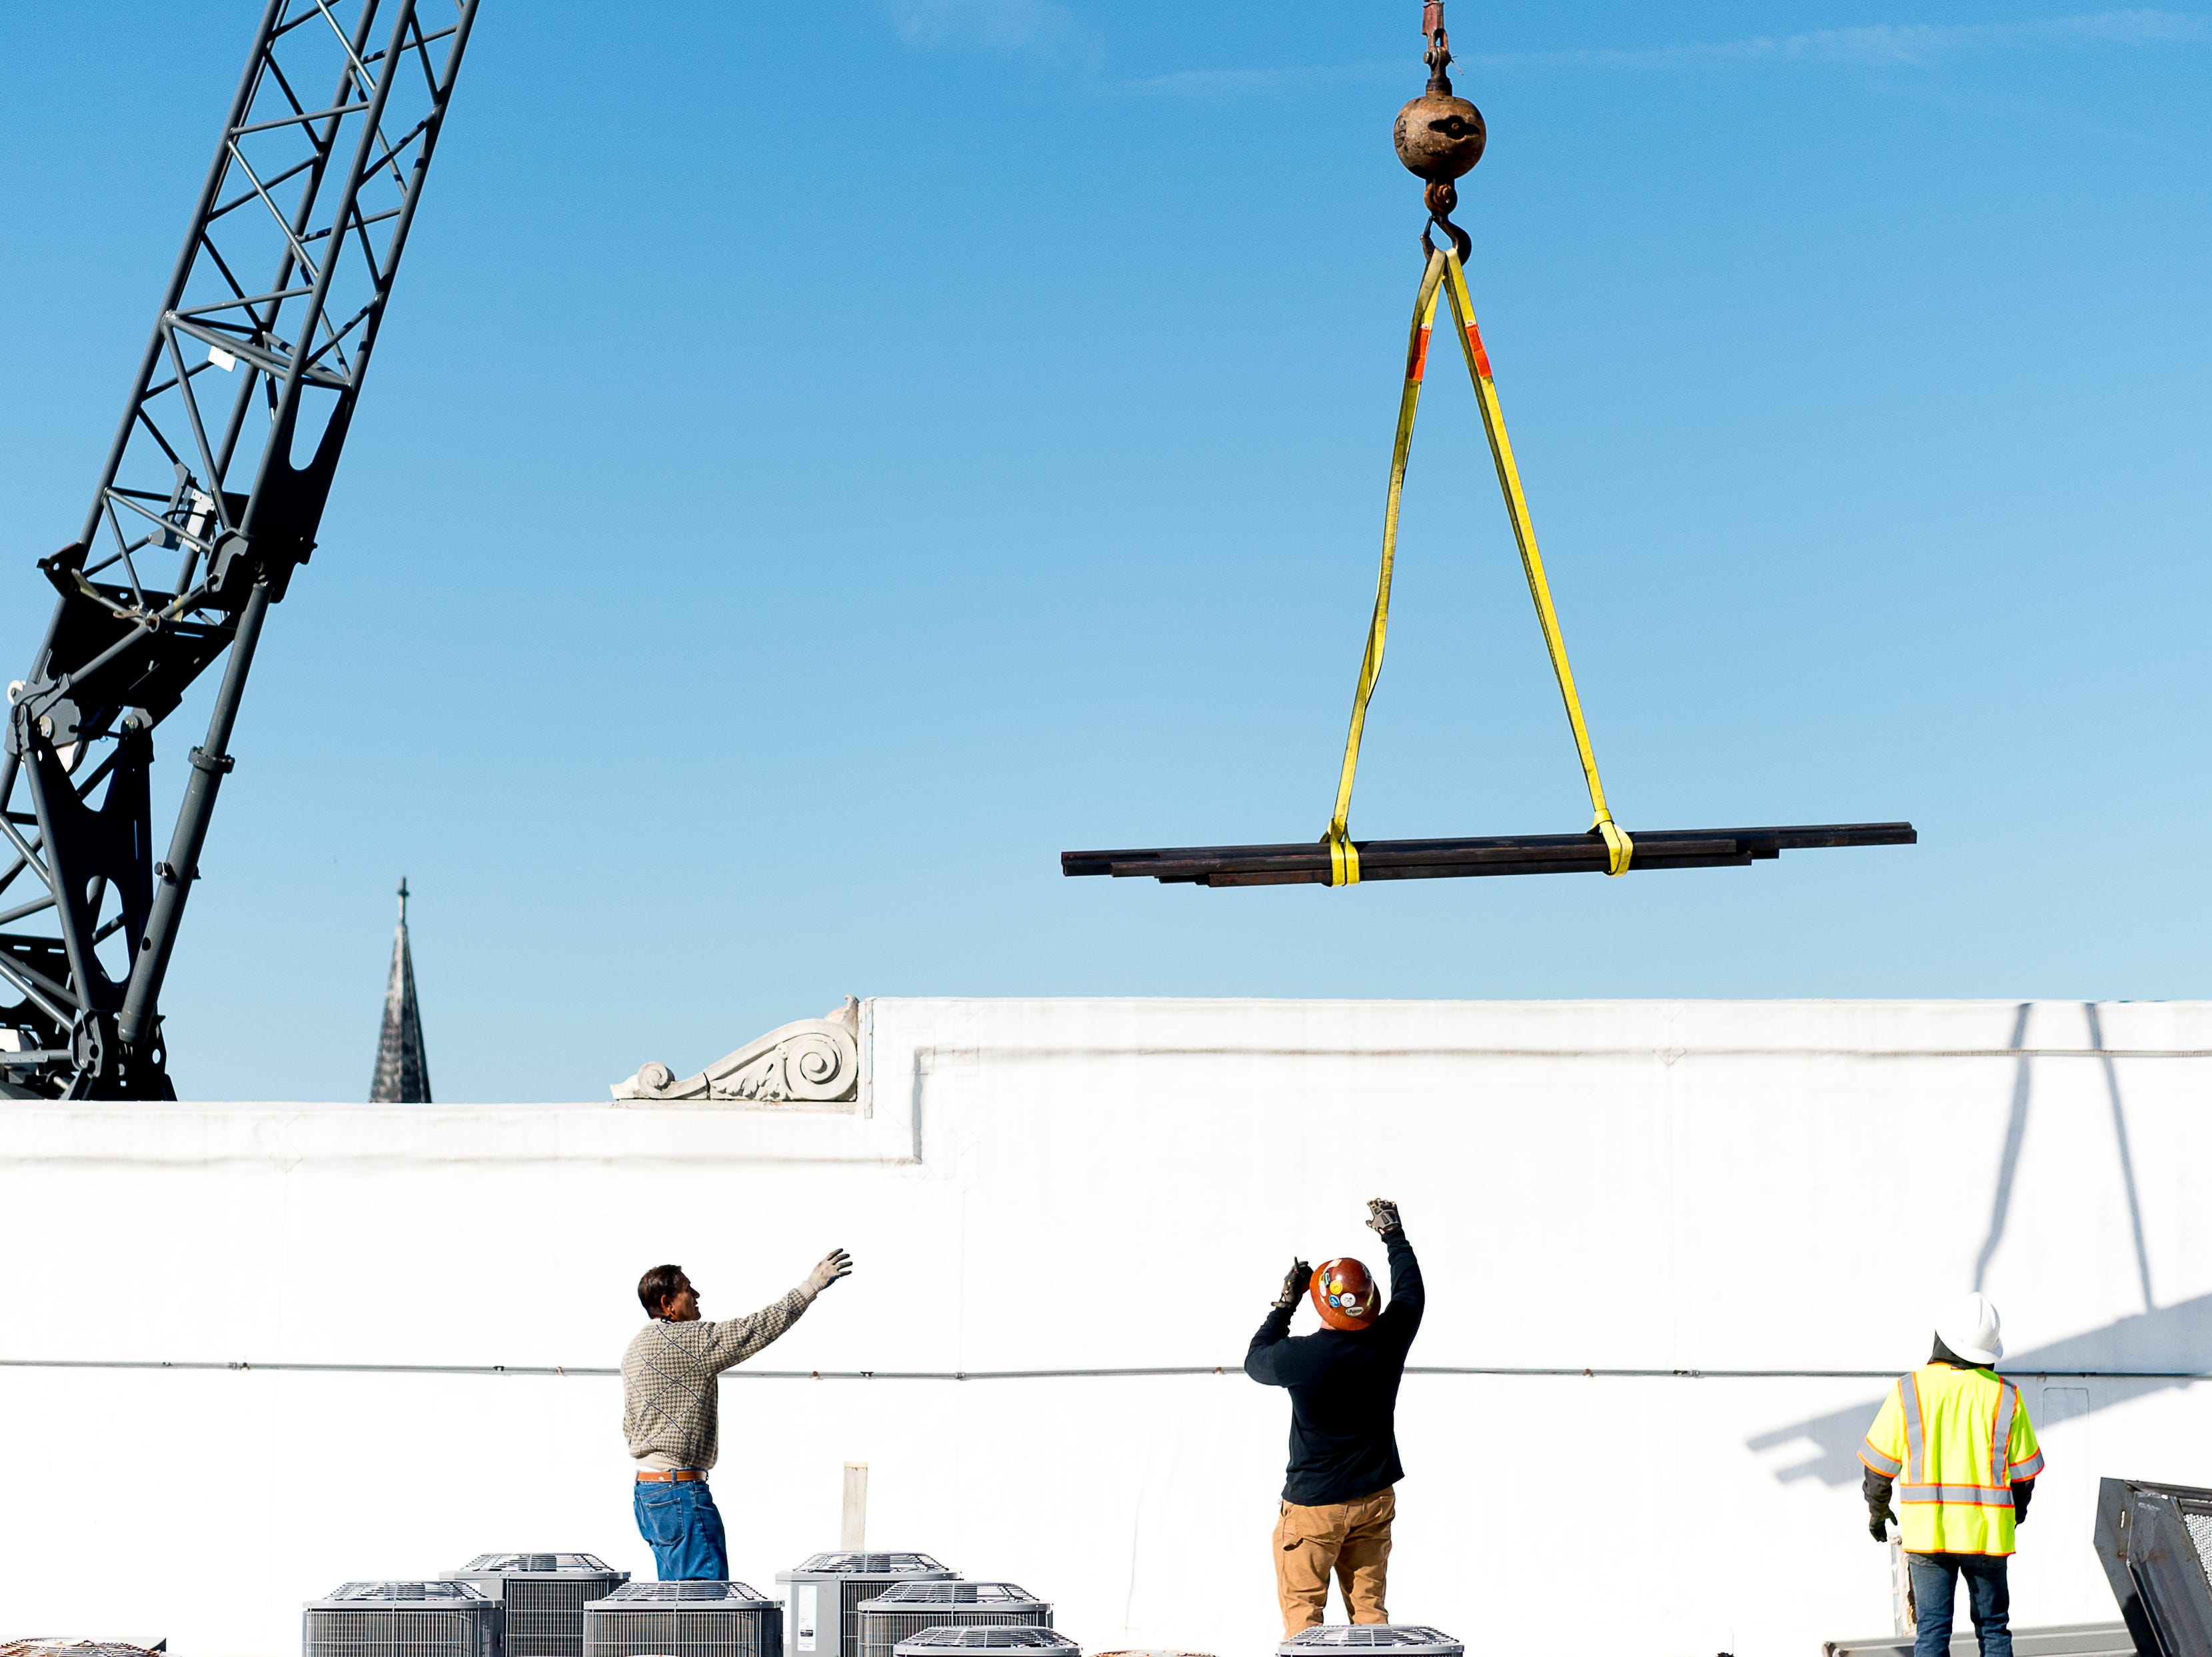 Crews set down equipment on the roof of Sterchi Lofts after being hoisted up by a crane in Knoxville, Tennessee on Tuesday, April 16, 2019. A new railing costing an estimated $70,000 is being installed to reopen the rooftop patio this summer.